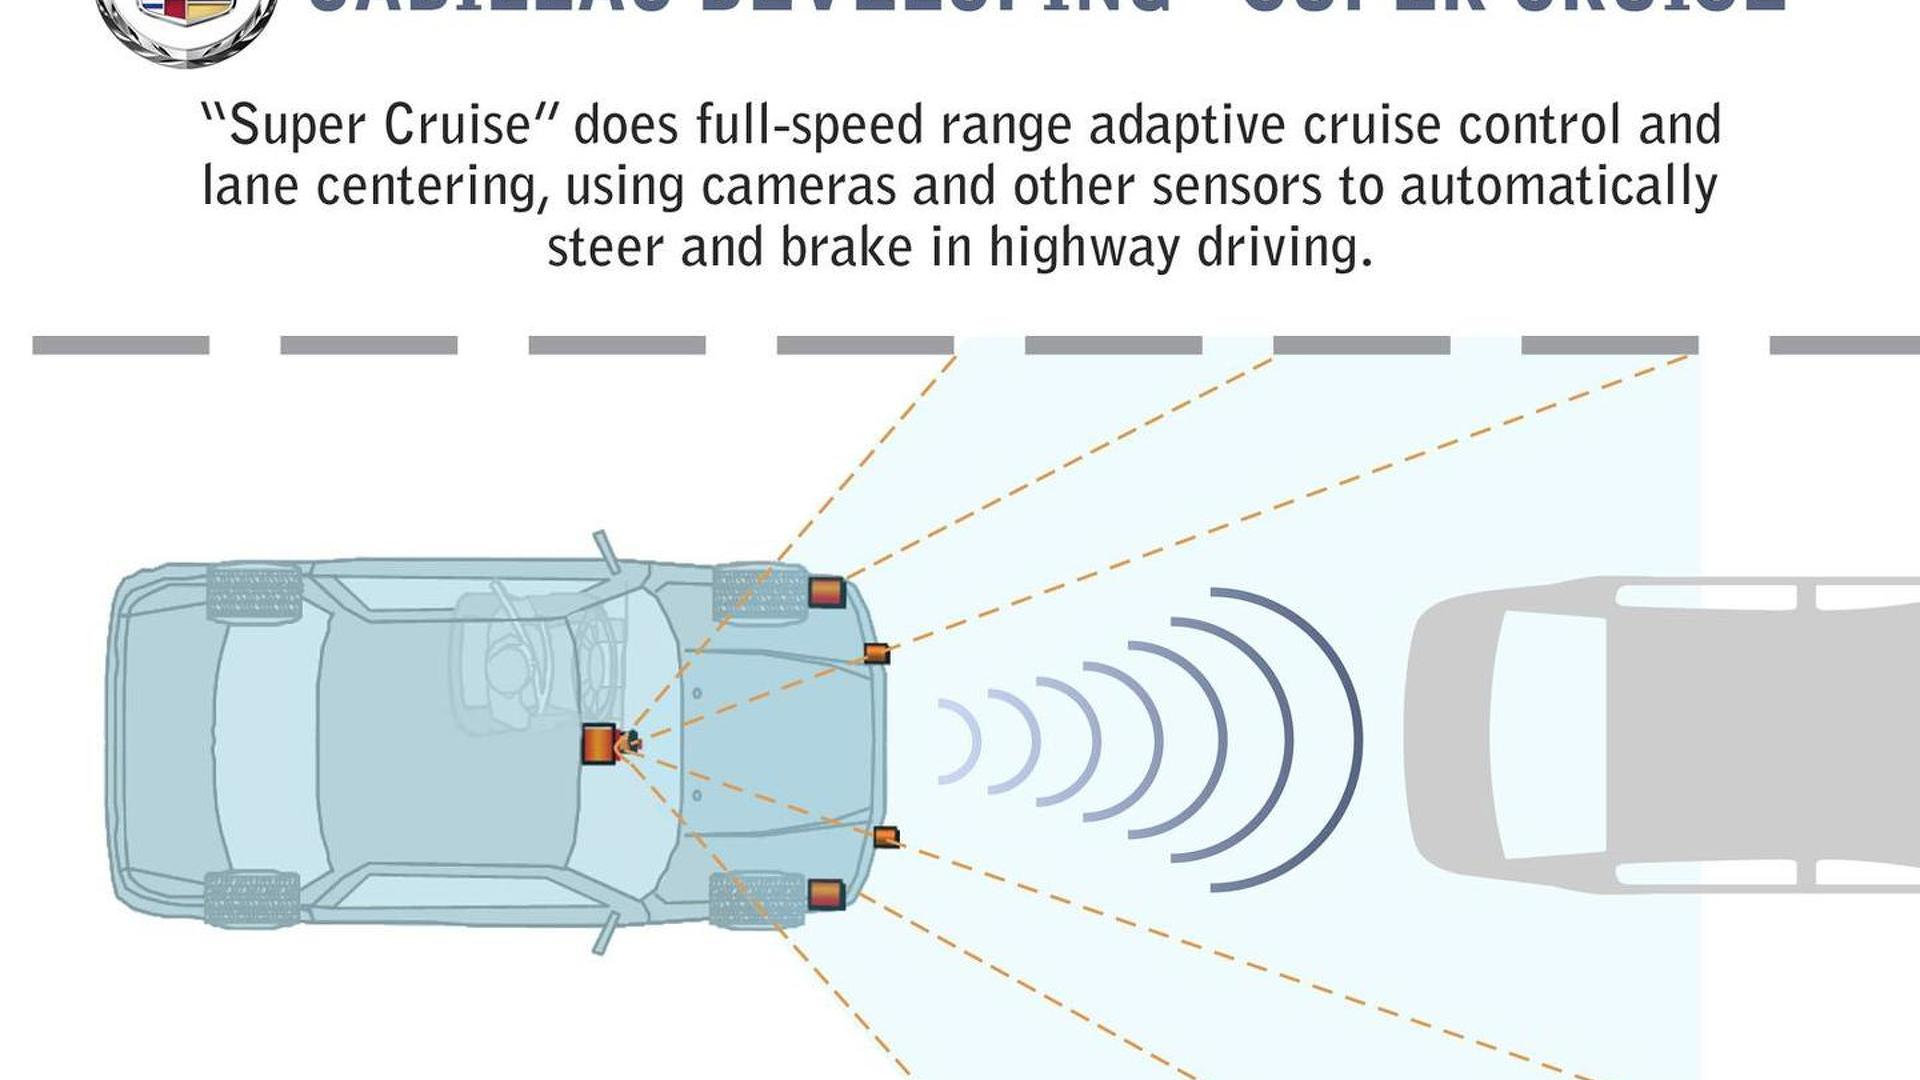 Cadillac Previews Their Super Cruise Semi Autonomous Driving System Rover Control Diagram Video